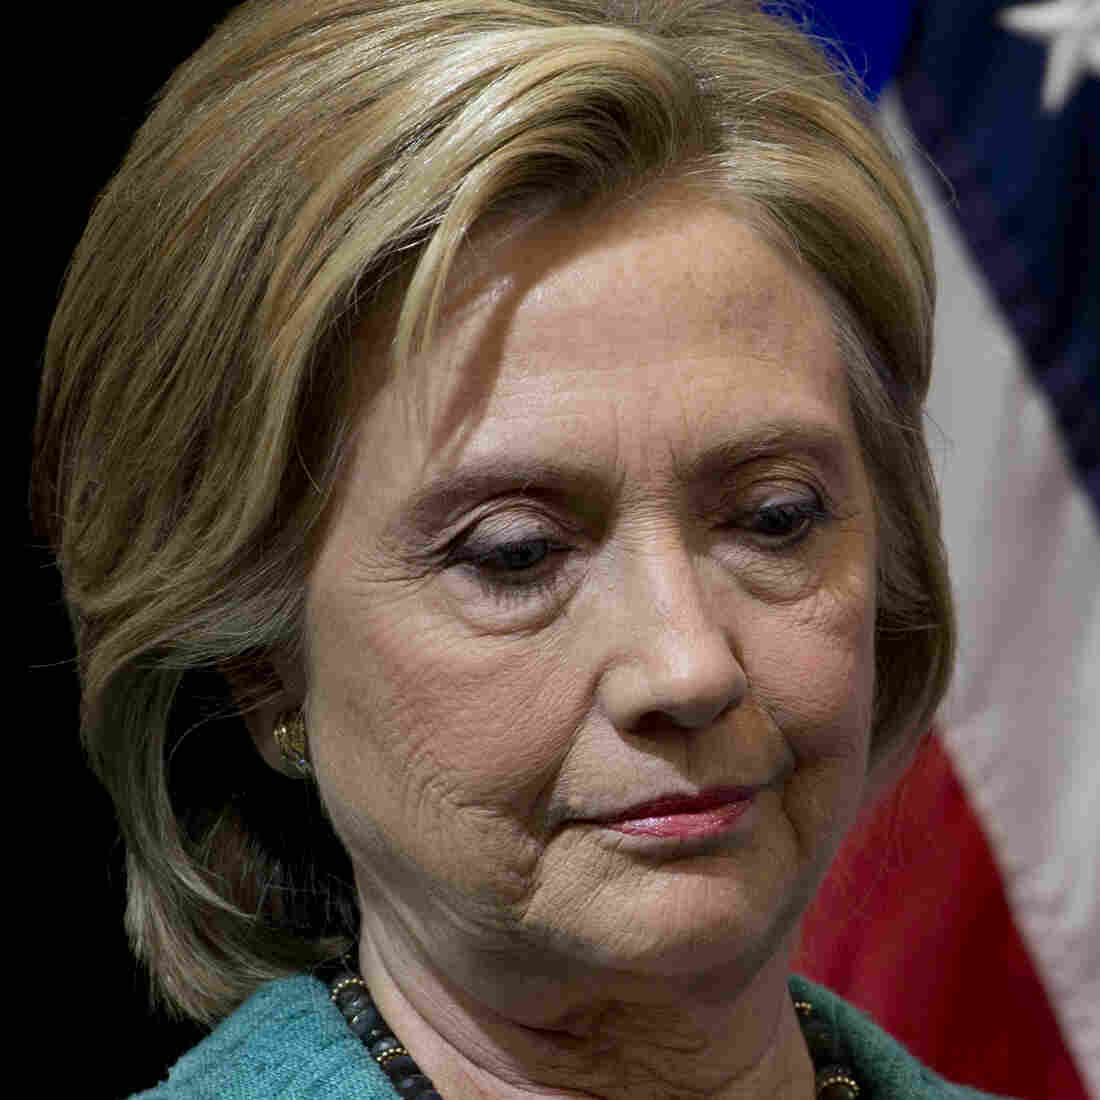 Democrat Hillary Clinton has been dealing with her ongoing email saga. It has gone on for months and has stuck. Compare that with Republican Donald Trump. All of his controversies have seemed to roll off him.